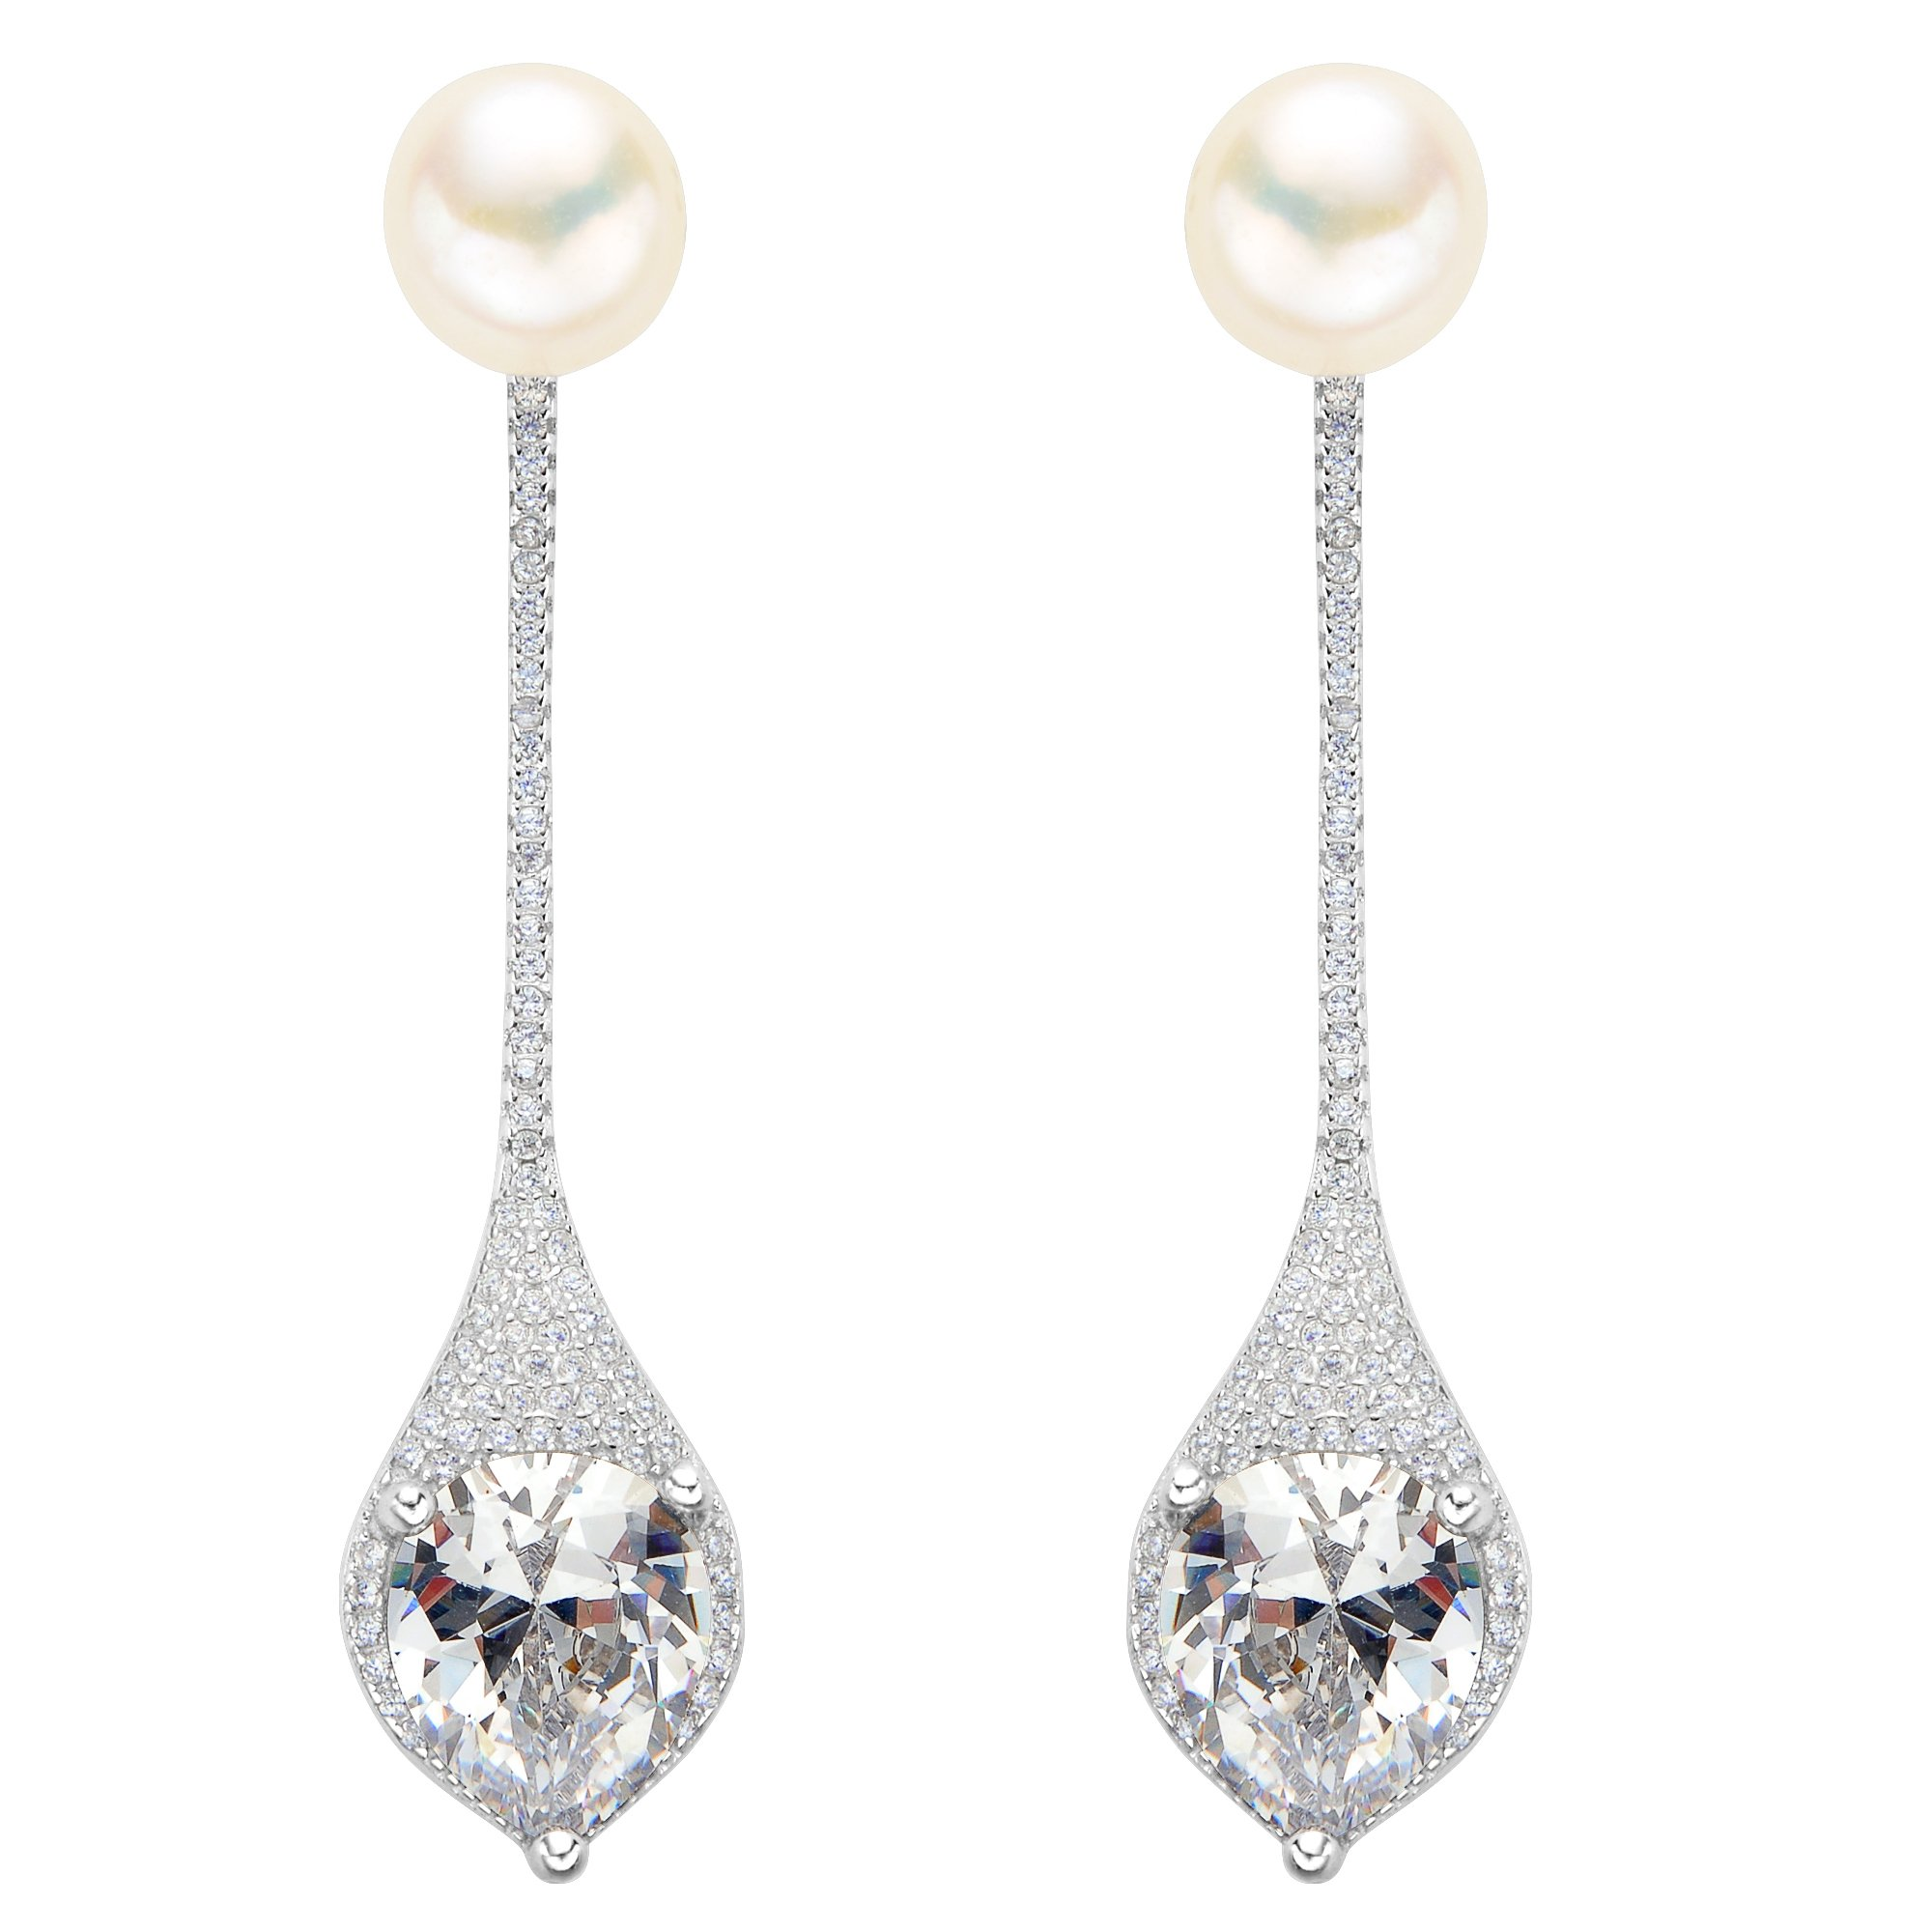 EVER FAITH 925 Sterling Silver CZ 9MM AAA Freshwater Cultured Pearl Elegant Drop Ear Jacket Earrings